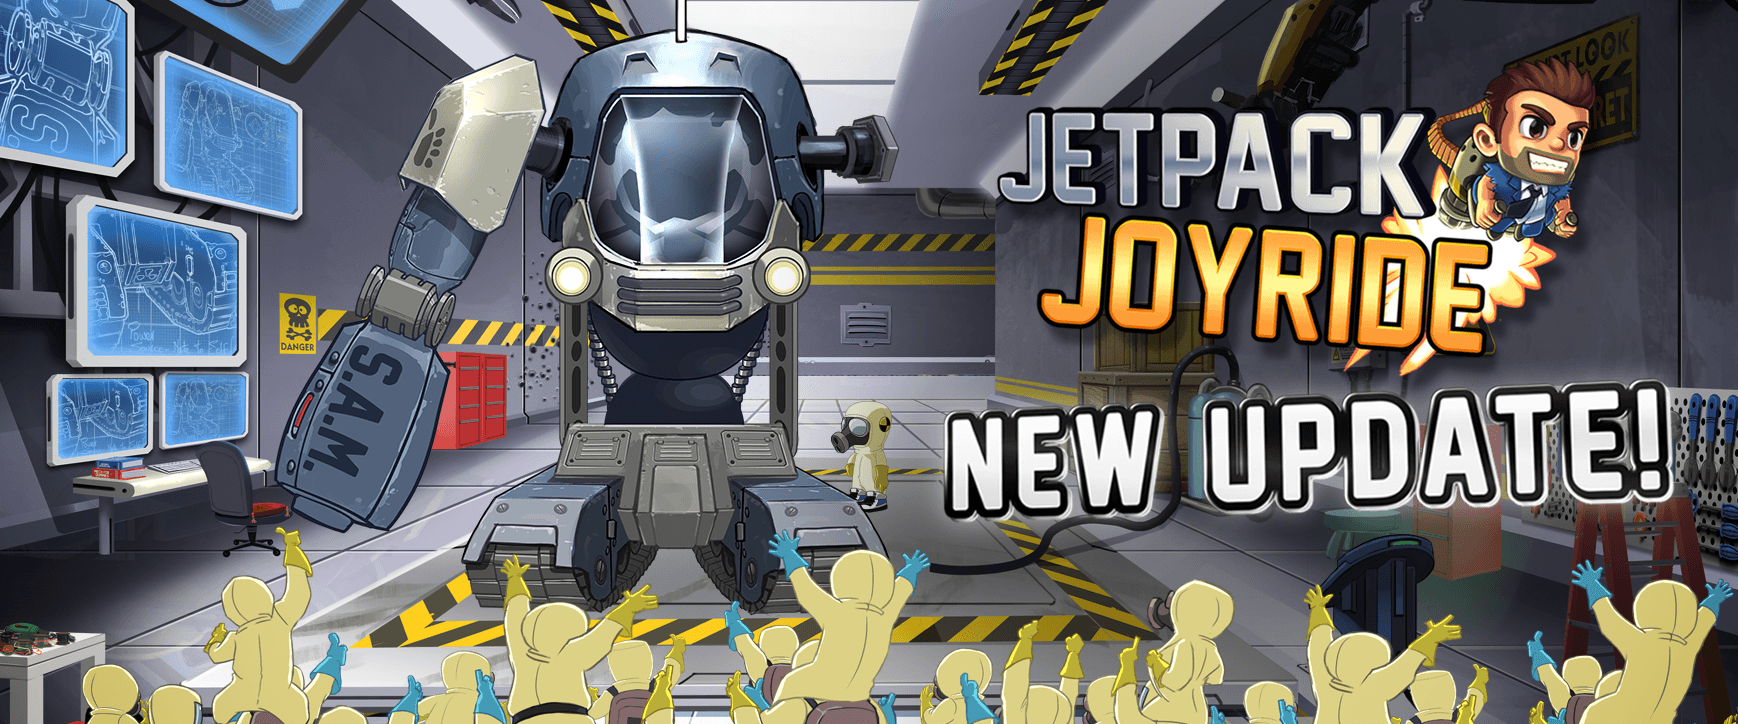 Jetpack Joyride Gets A Huge Update In Time For Christmas – Capsule ...